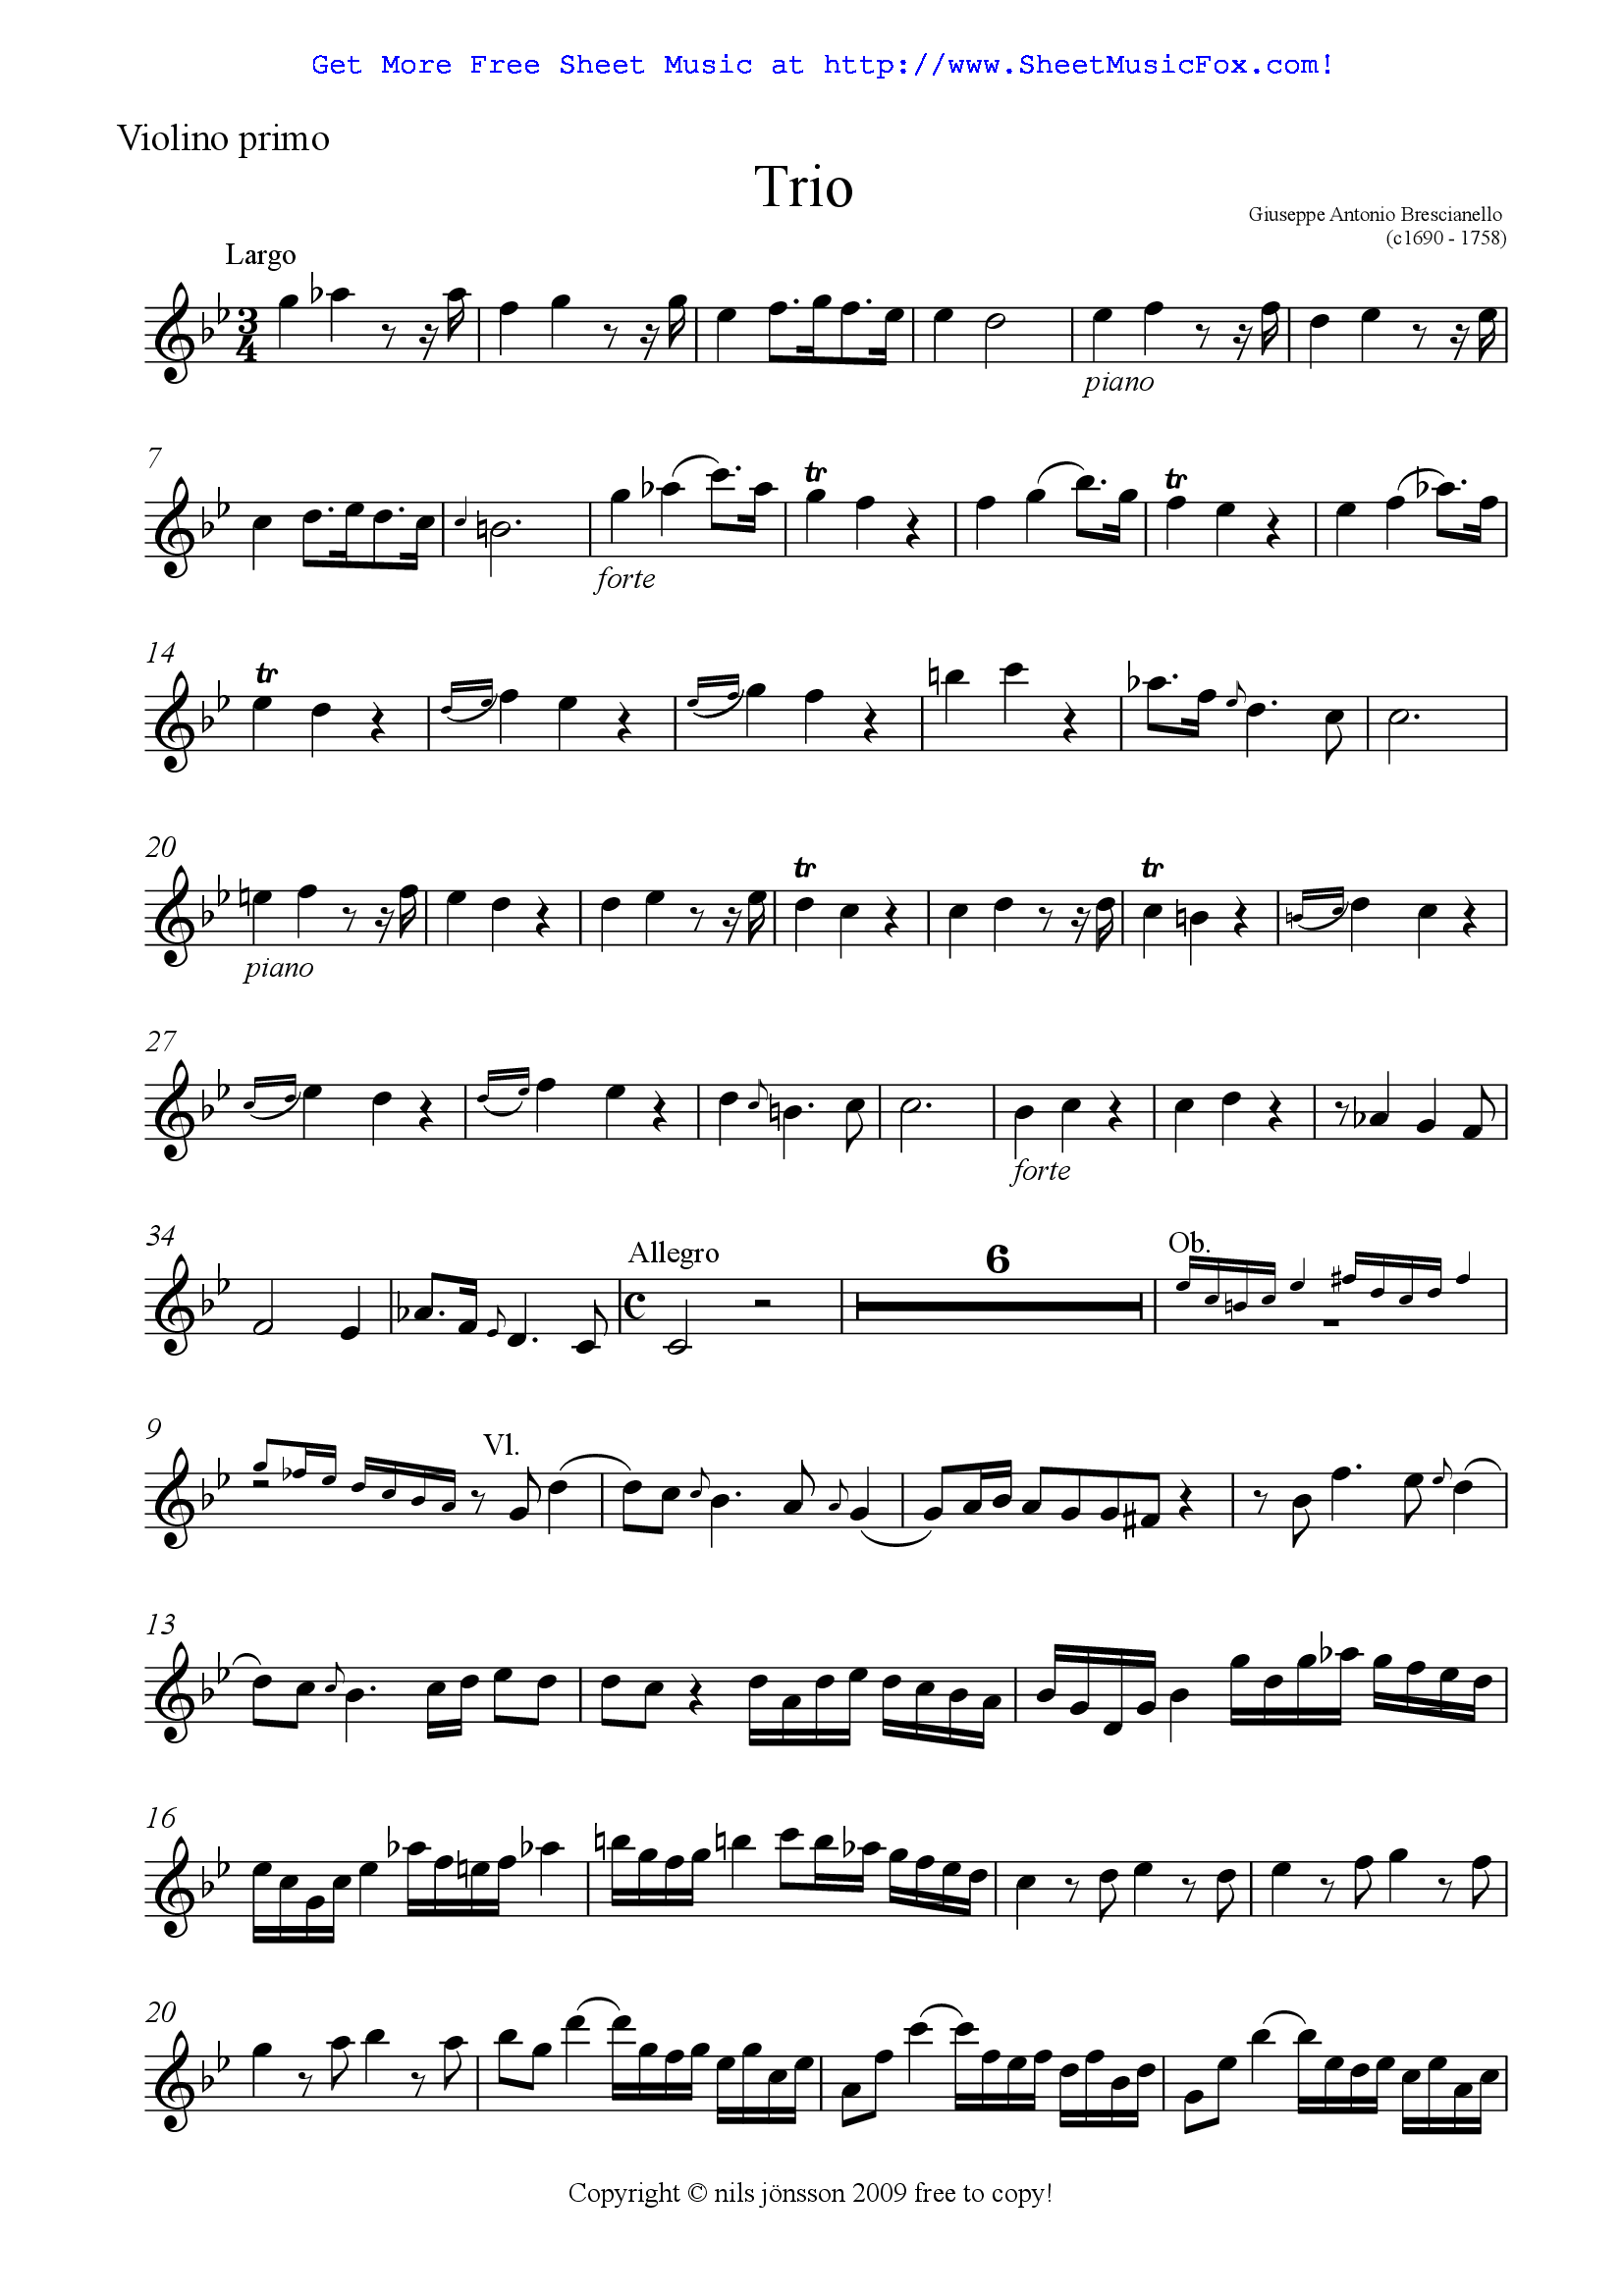 Flute Oboe Clarinet Trio Free Sheet Music